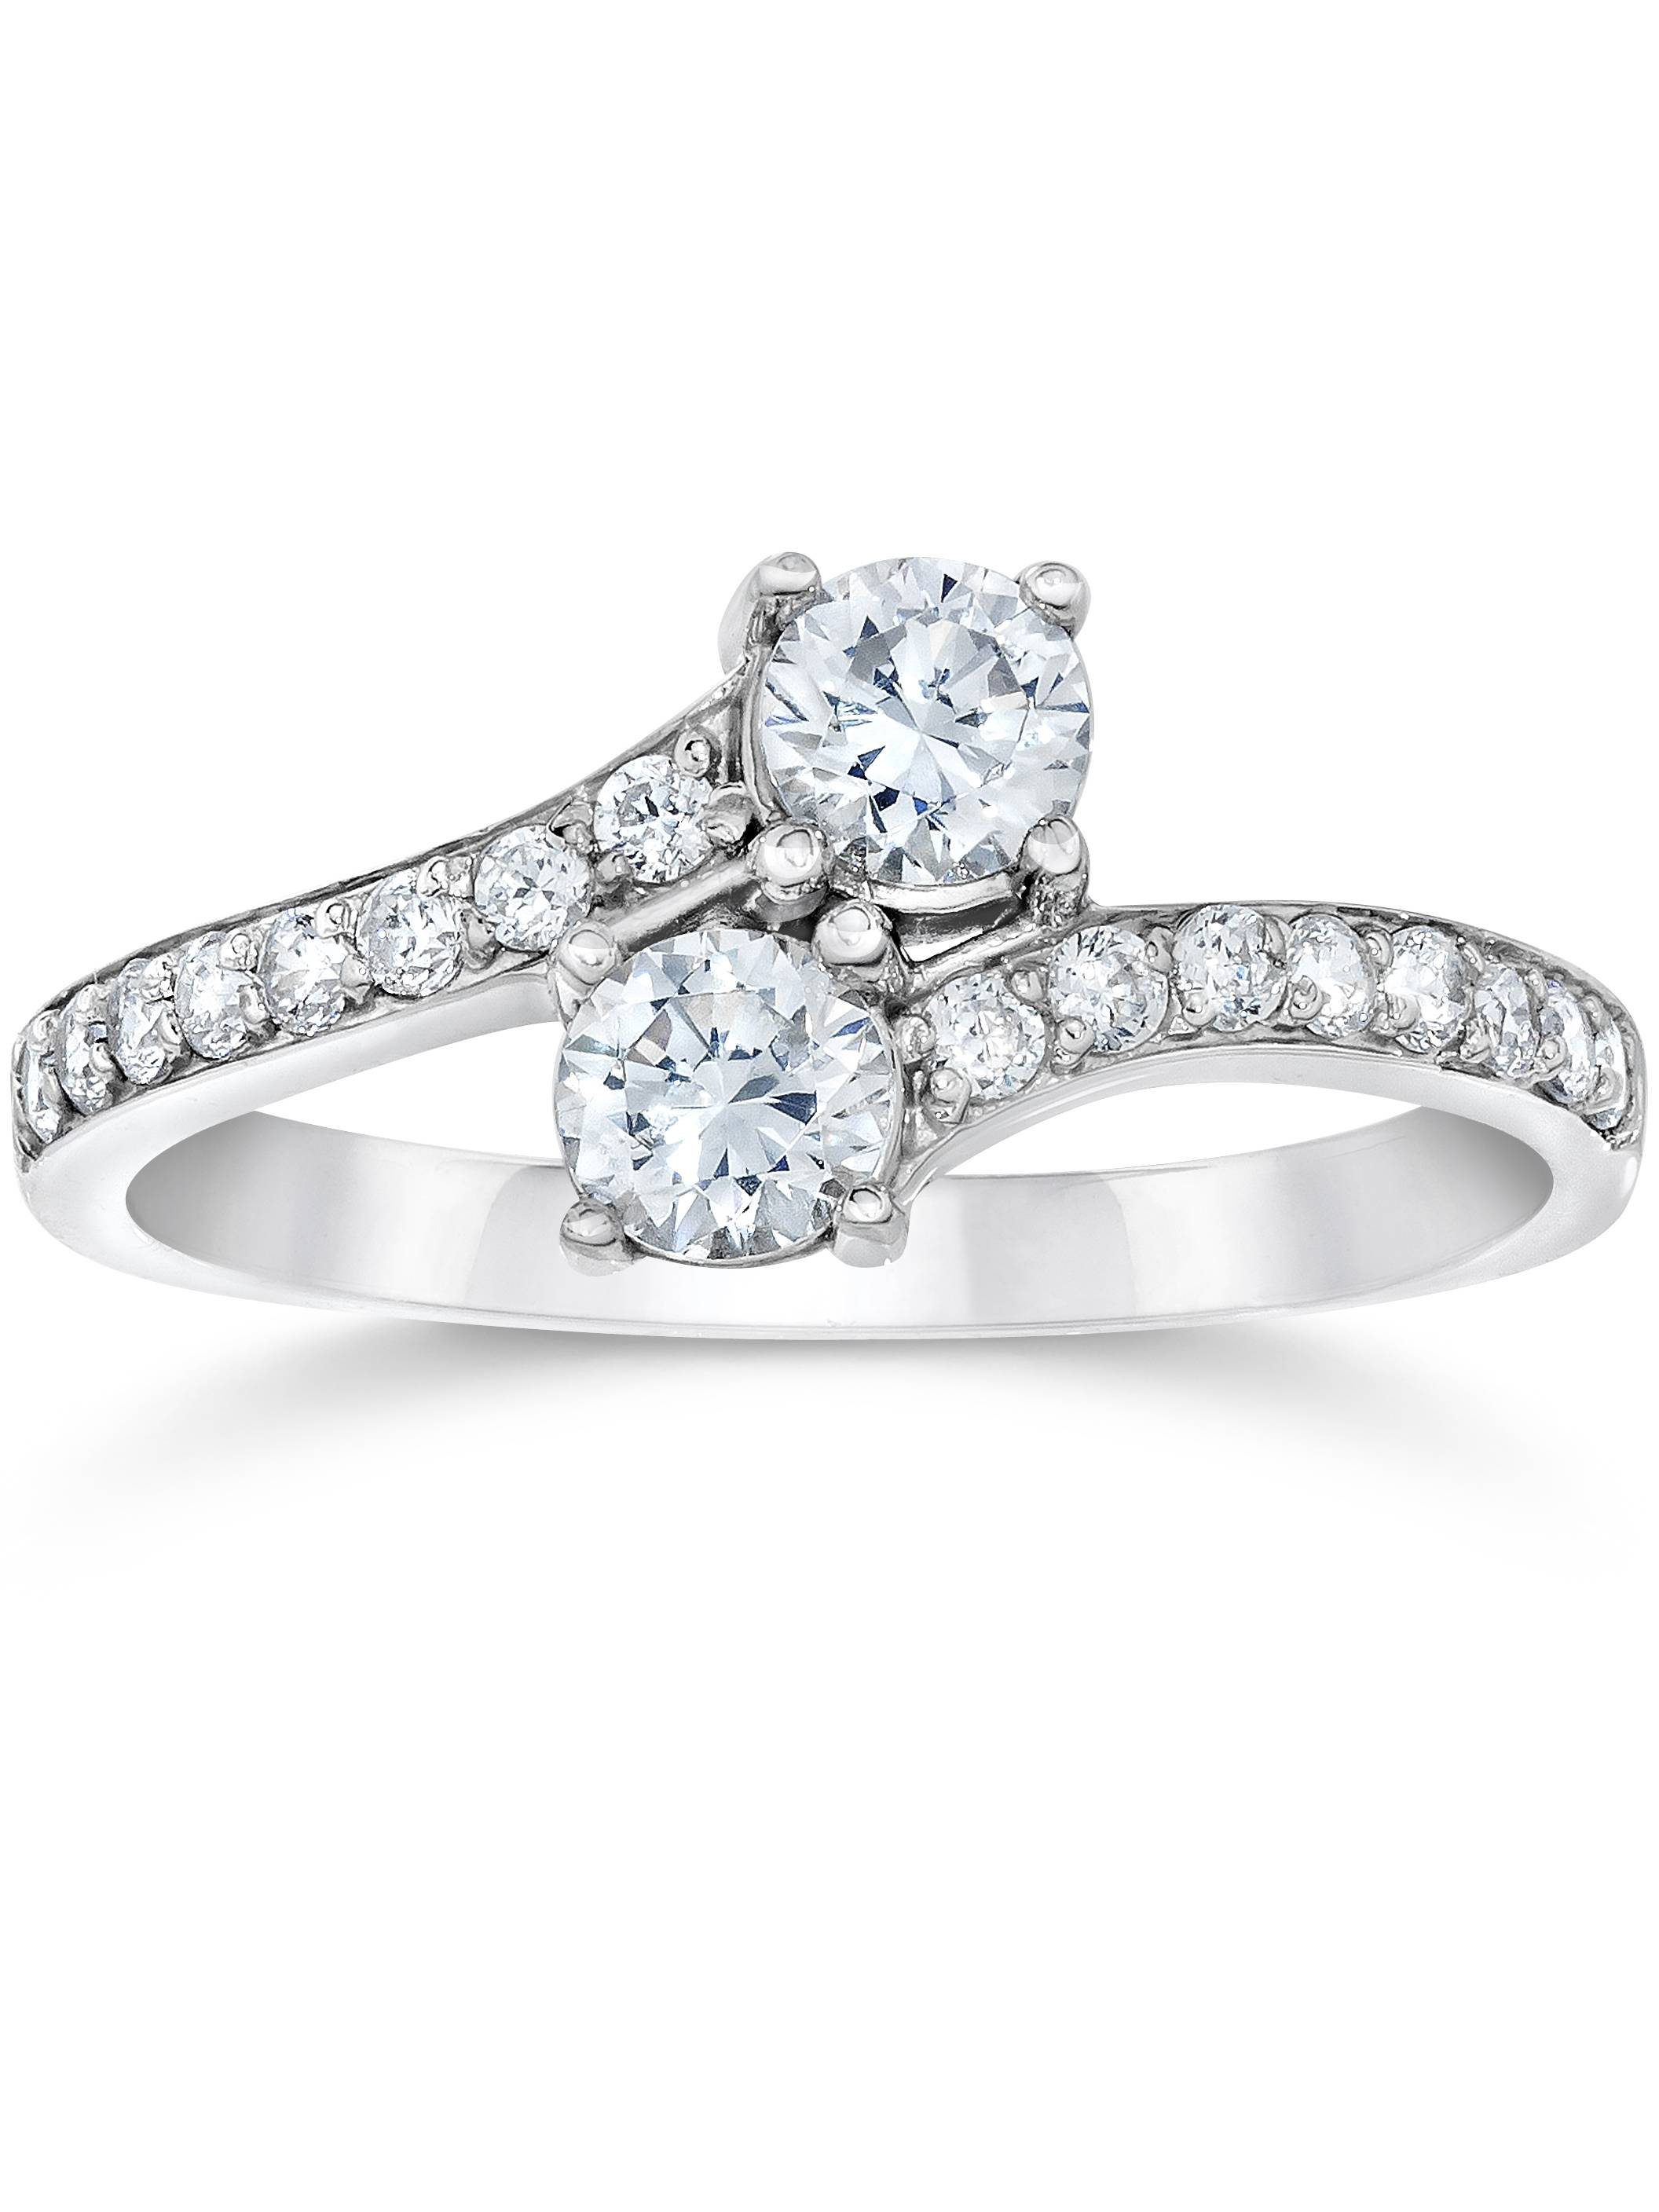 G/SI 1.00 Ct Forever Us Two Stone Round Diamond Engagement Ring 10k White Gold